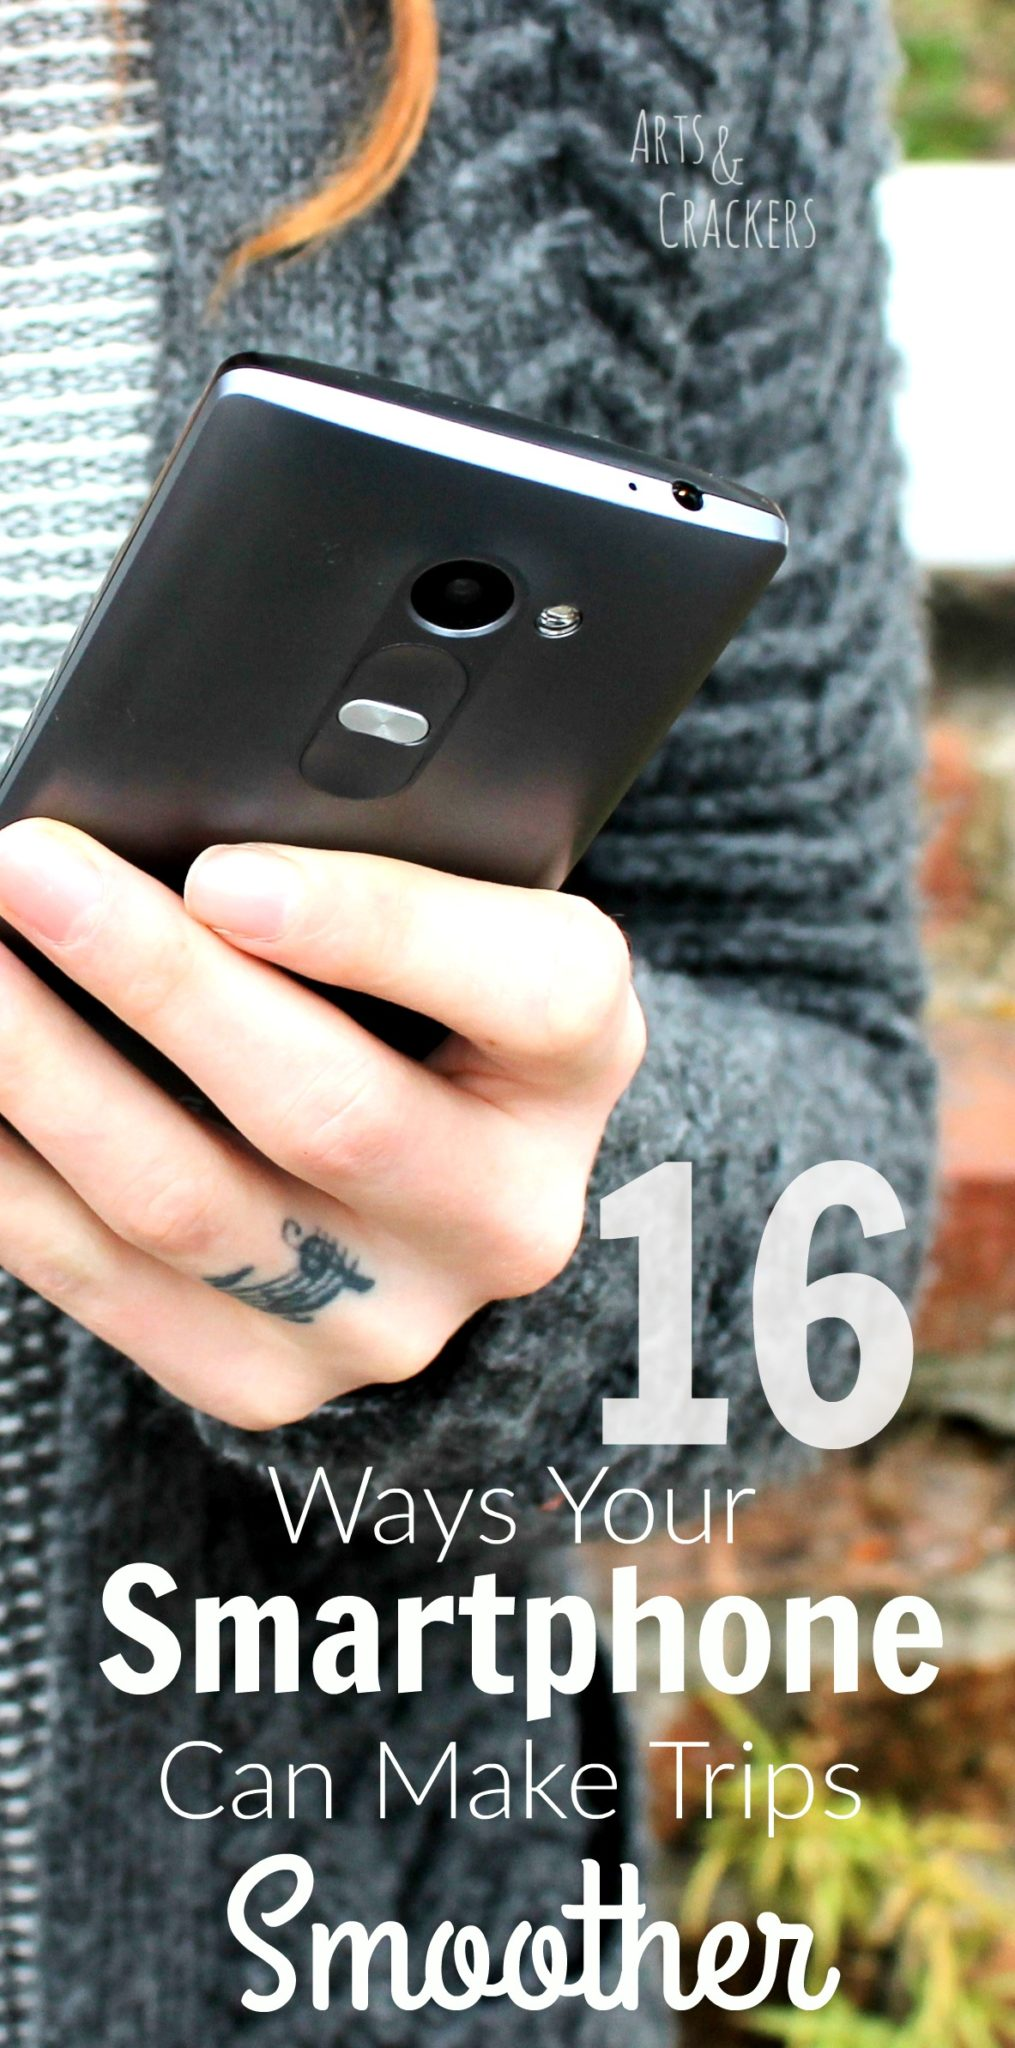 As a busy mom, I know going out and about with the kids can be crazy (and expensive.) Check out my 16 tips for using your smartphone on the go!